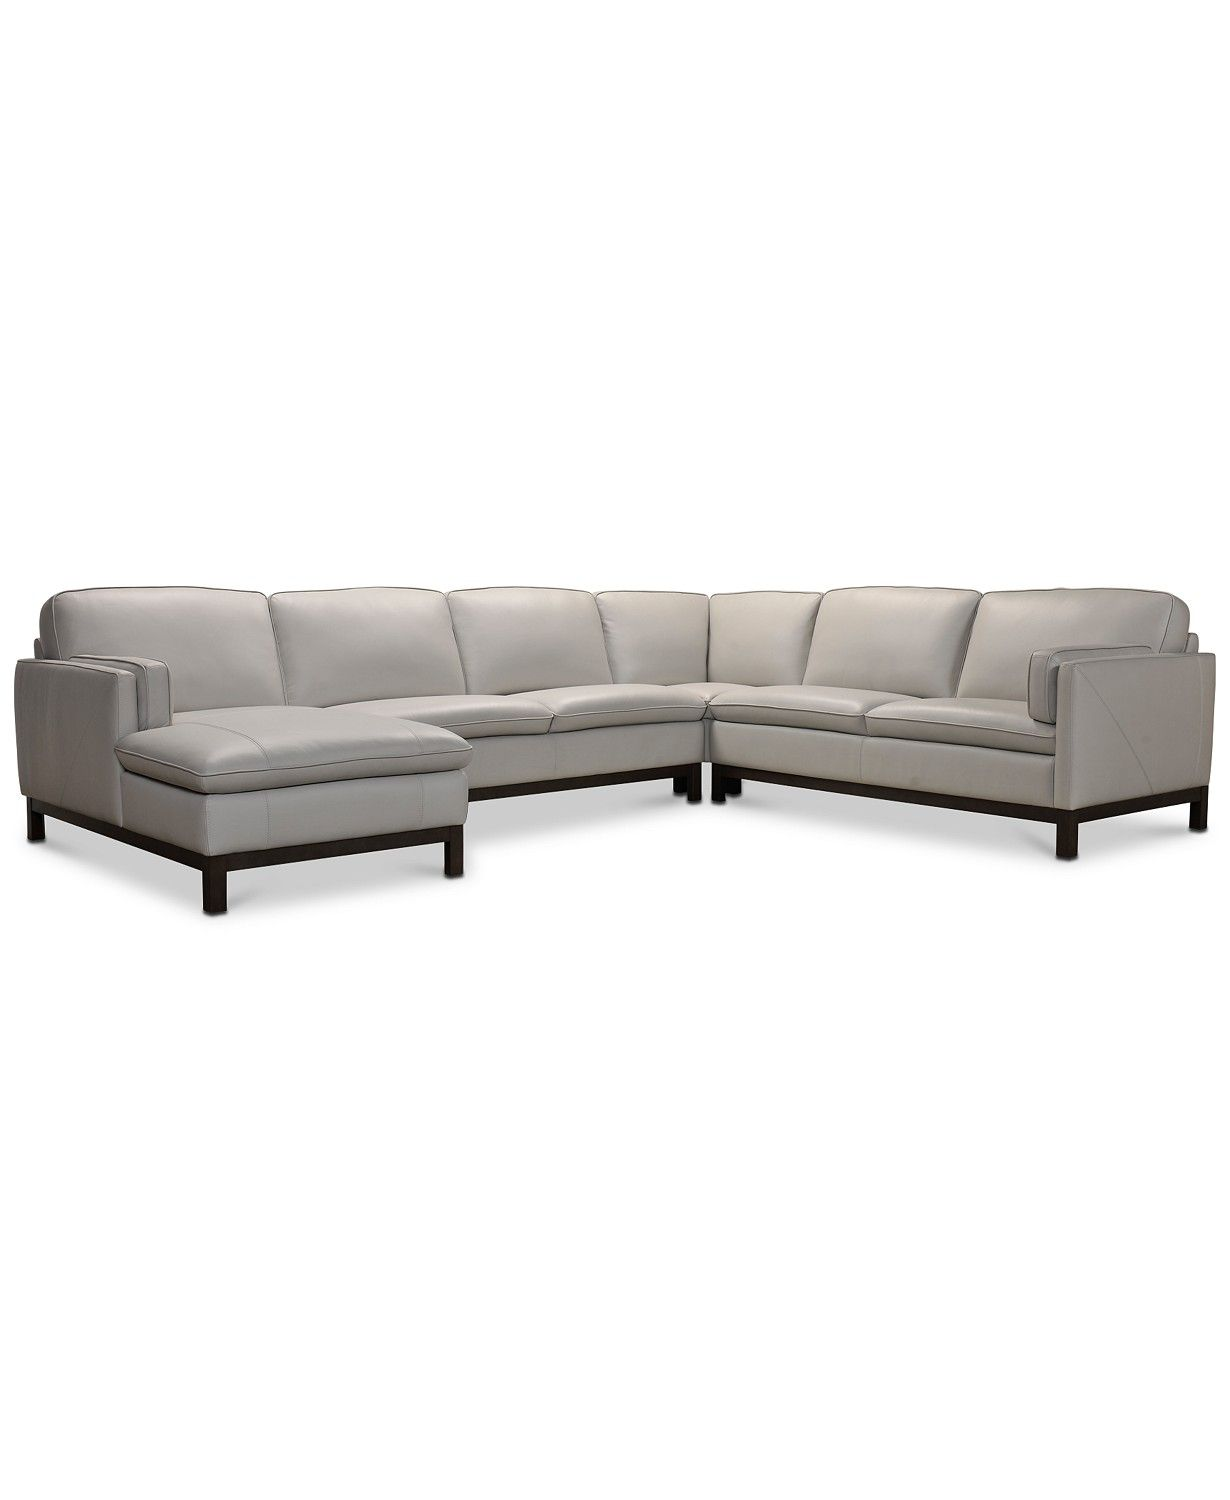 Furniture Virton 136 Leather Chaise Sectional Leather Sectional Sofas Closeout Furniture